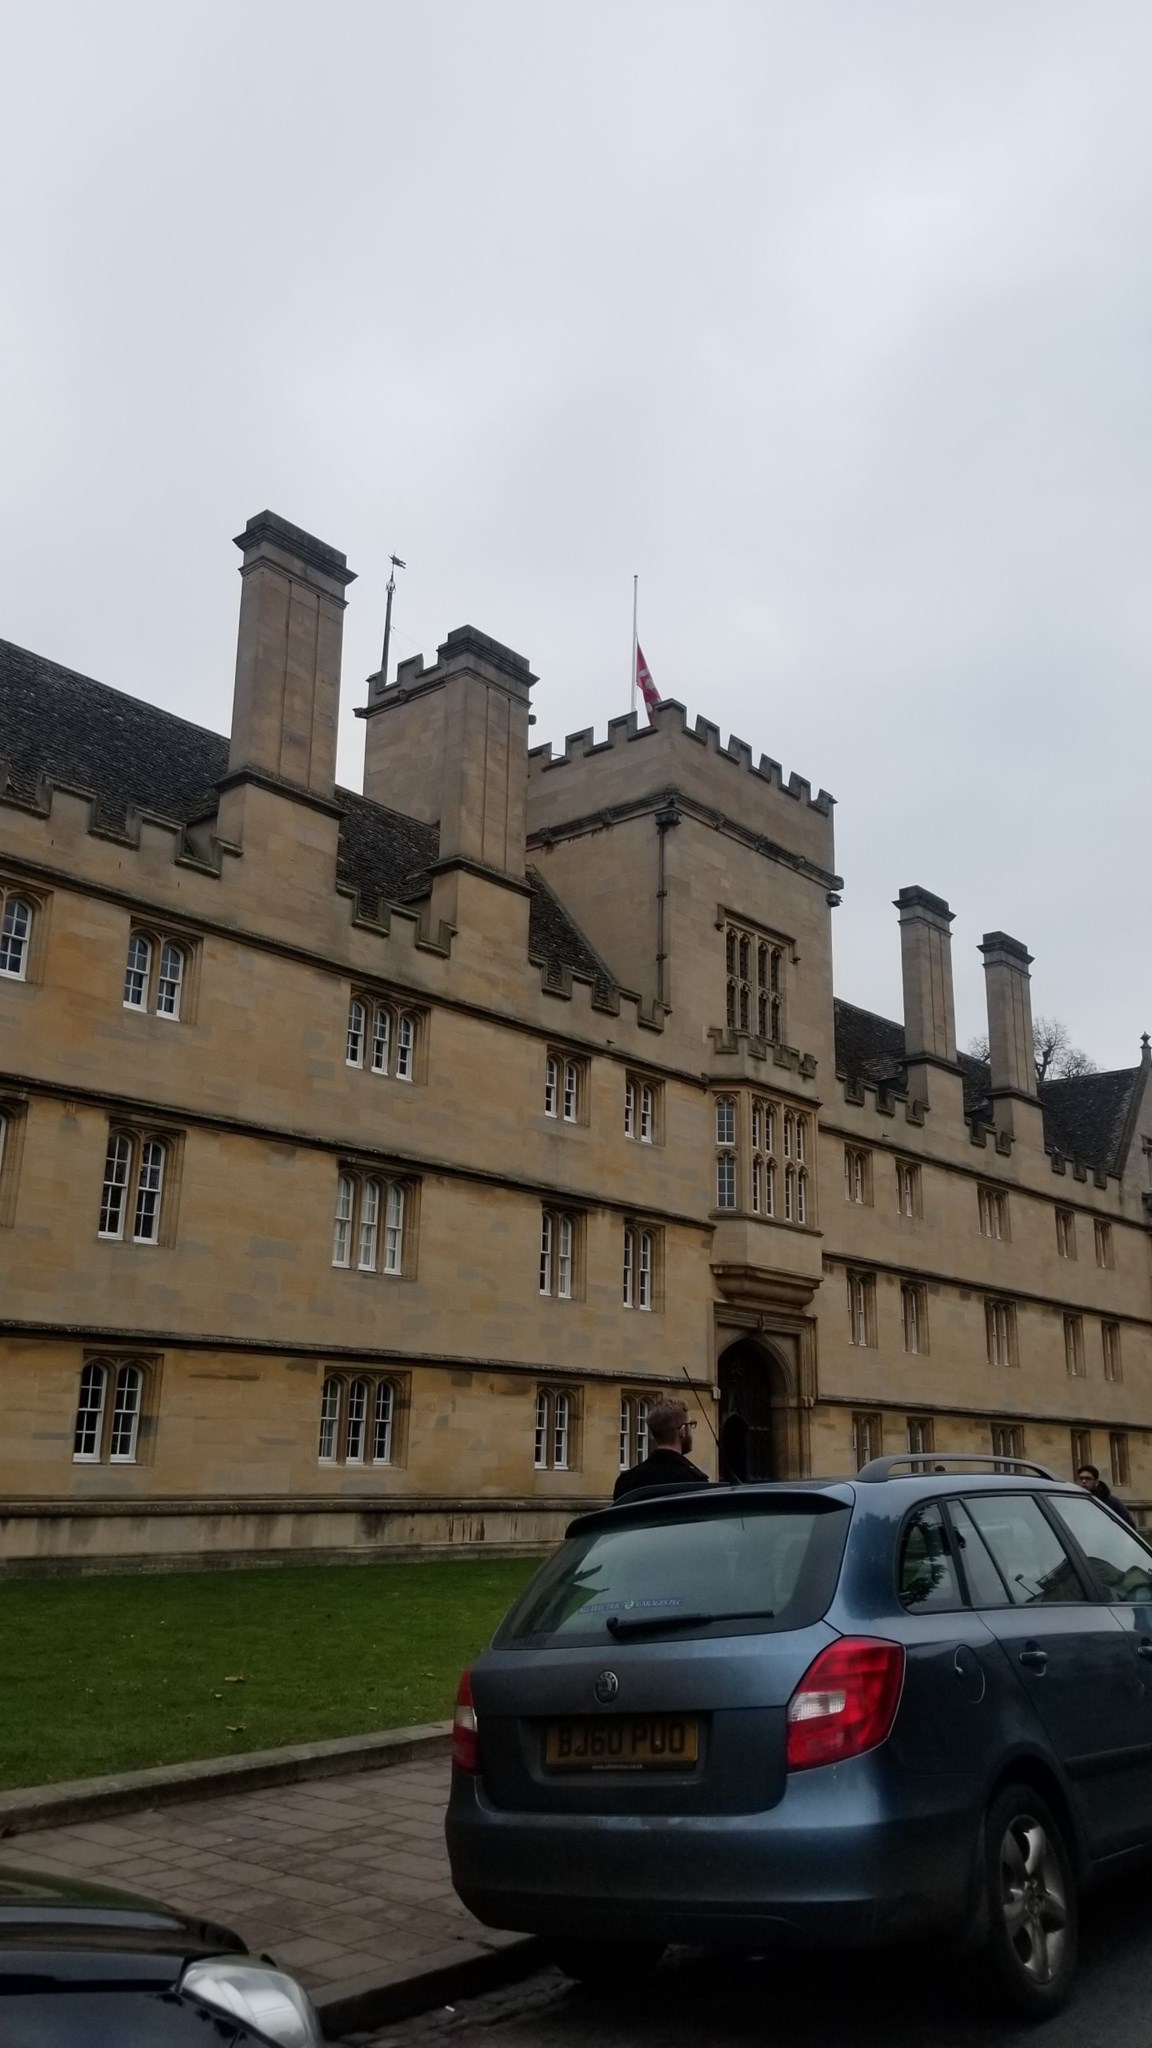 Wadham College's flag is at half staff today  in memory of Reza